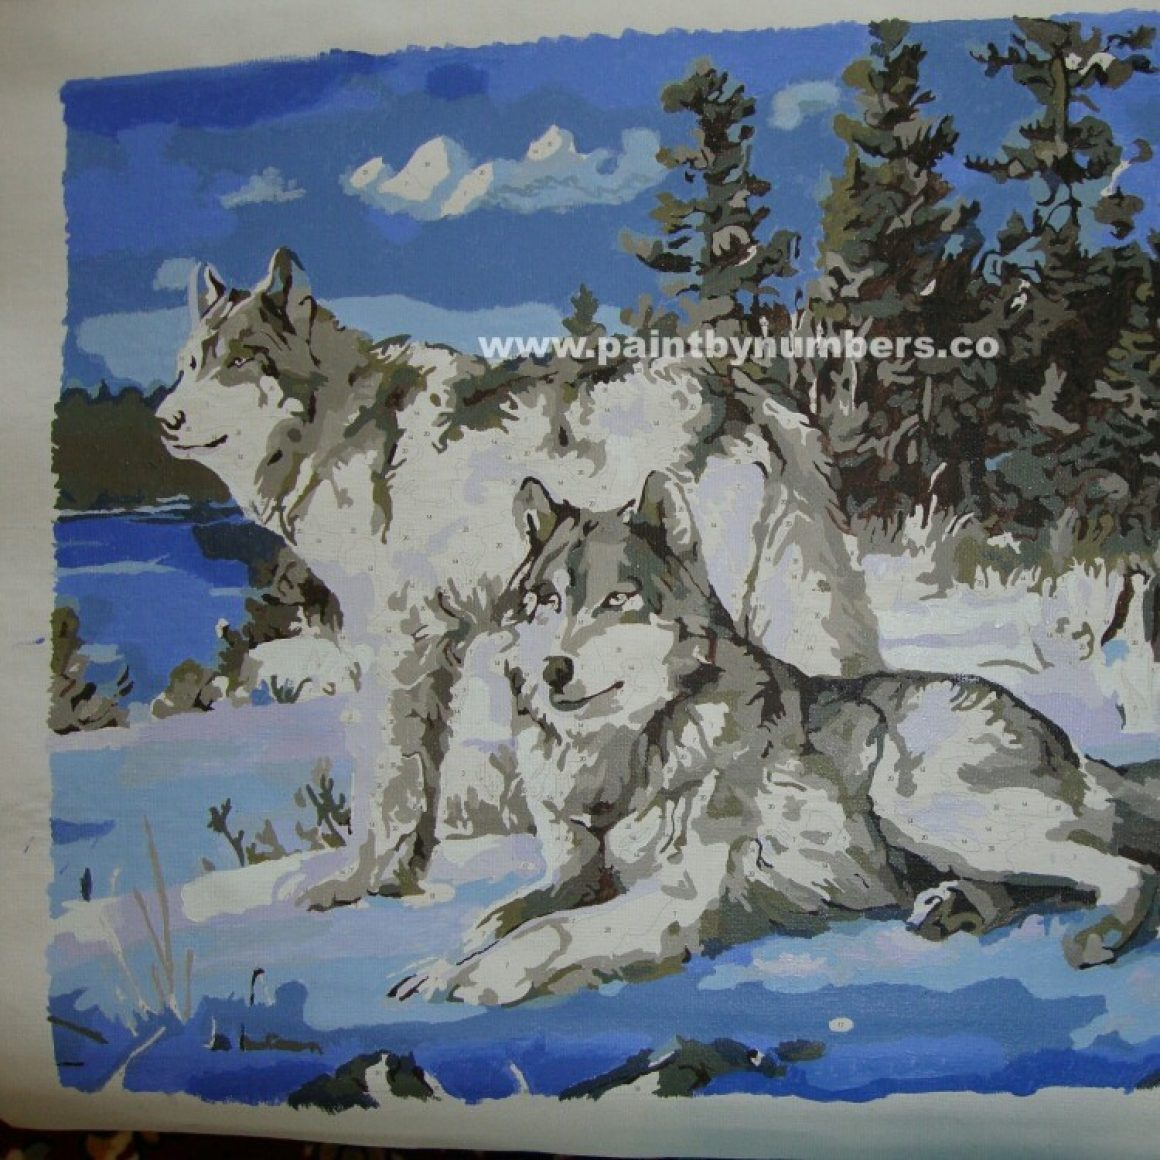 Two white wolves in the snow3